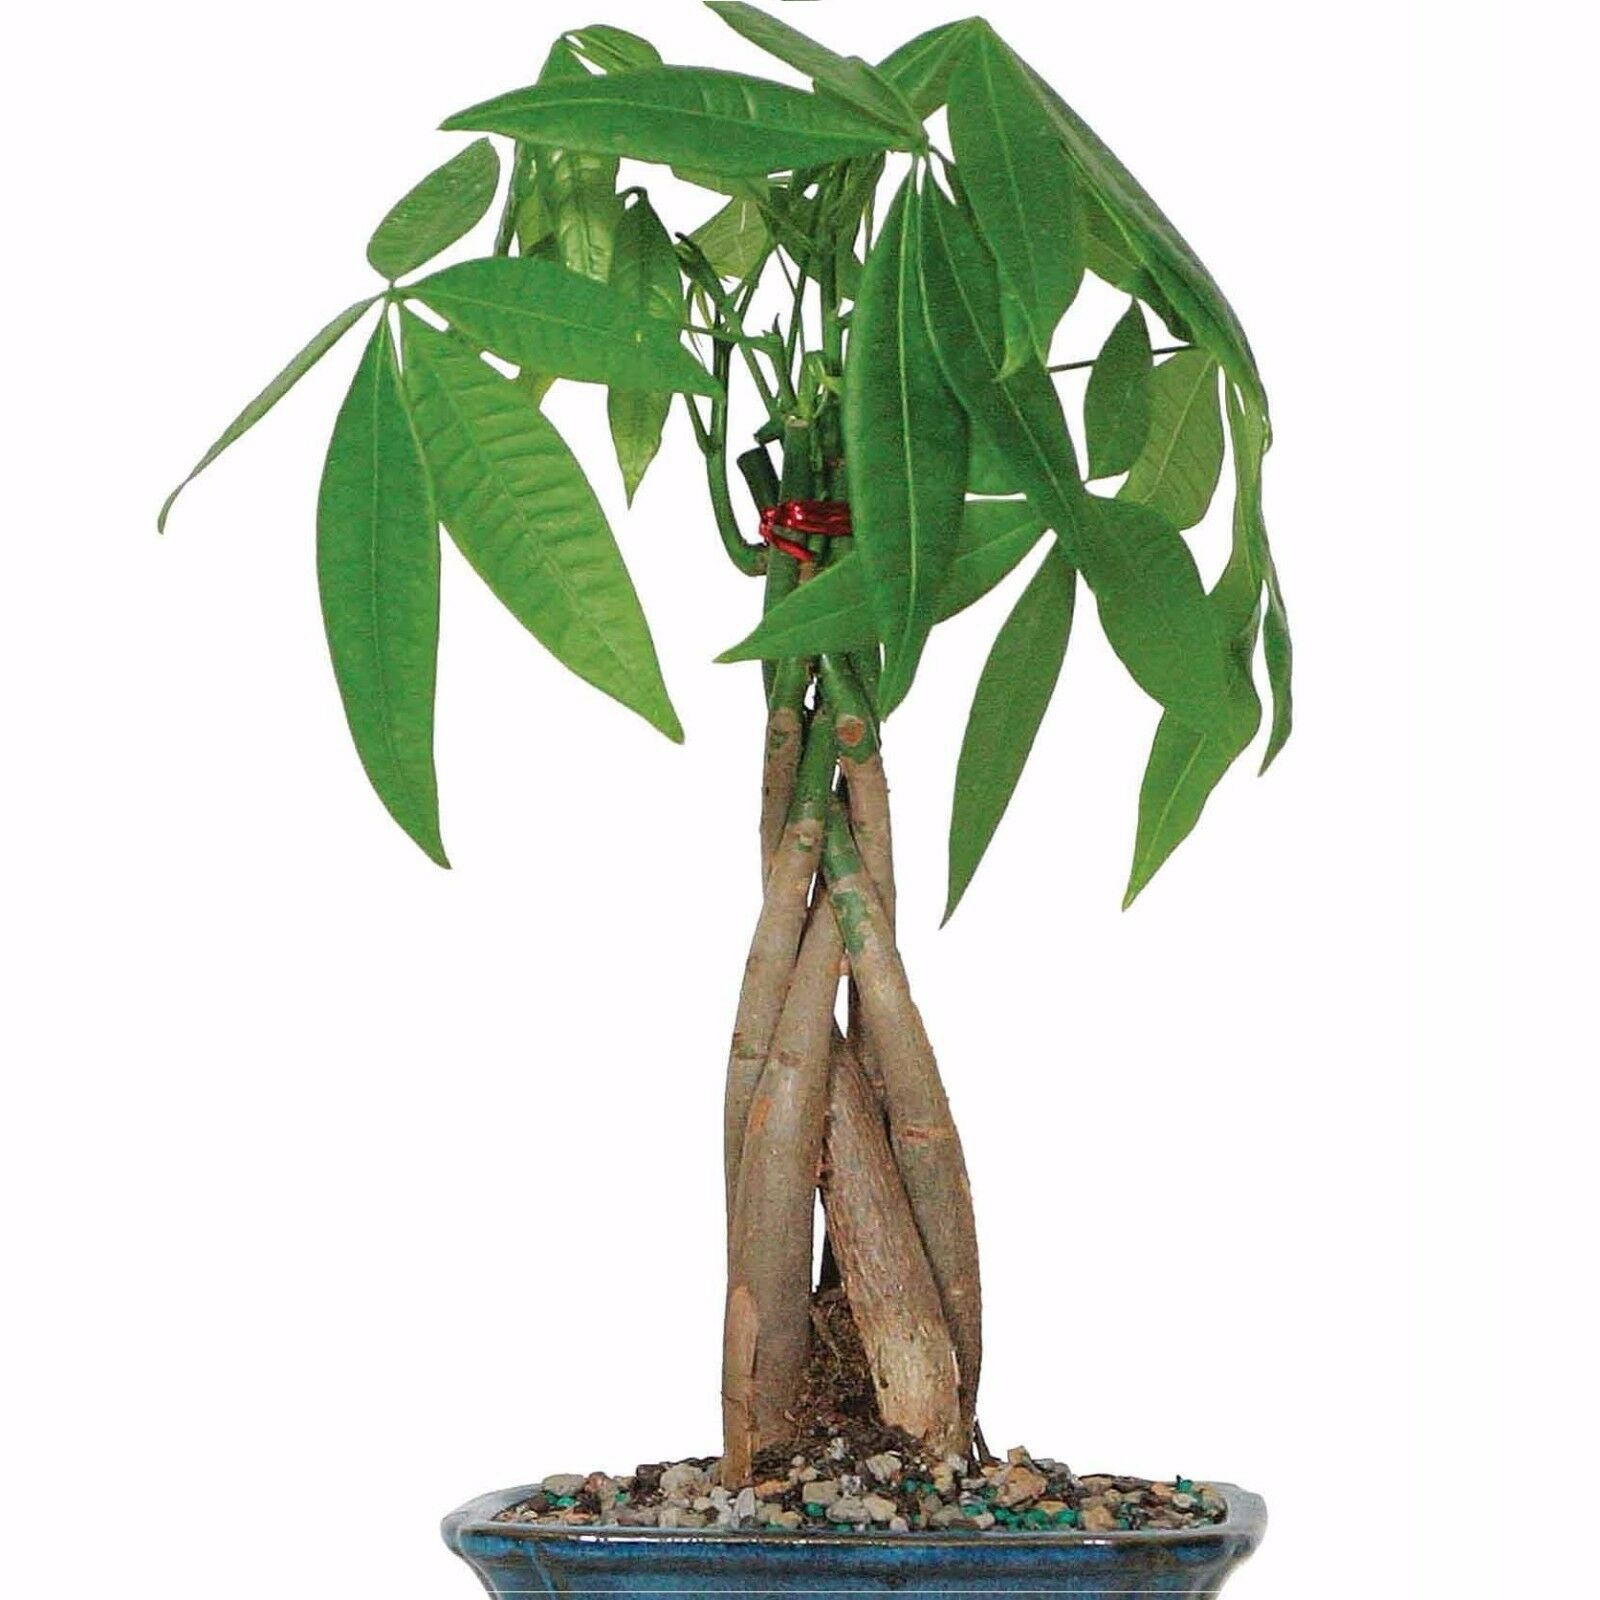 Real Live Good Luck Fortune Braided Money Tree Plant Indoor Houseplant 18 Tall For Sale Online Ebay